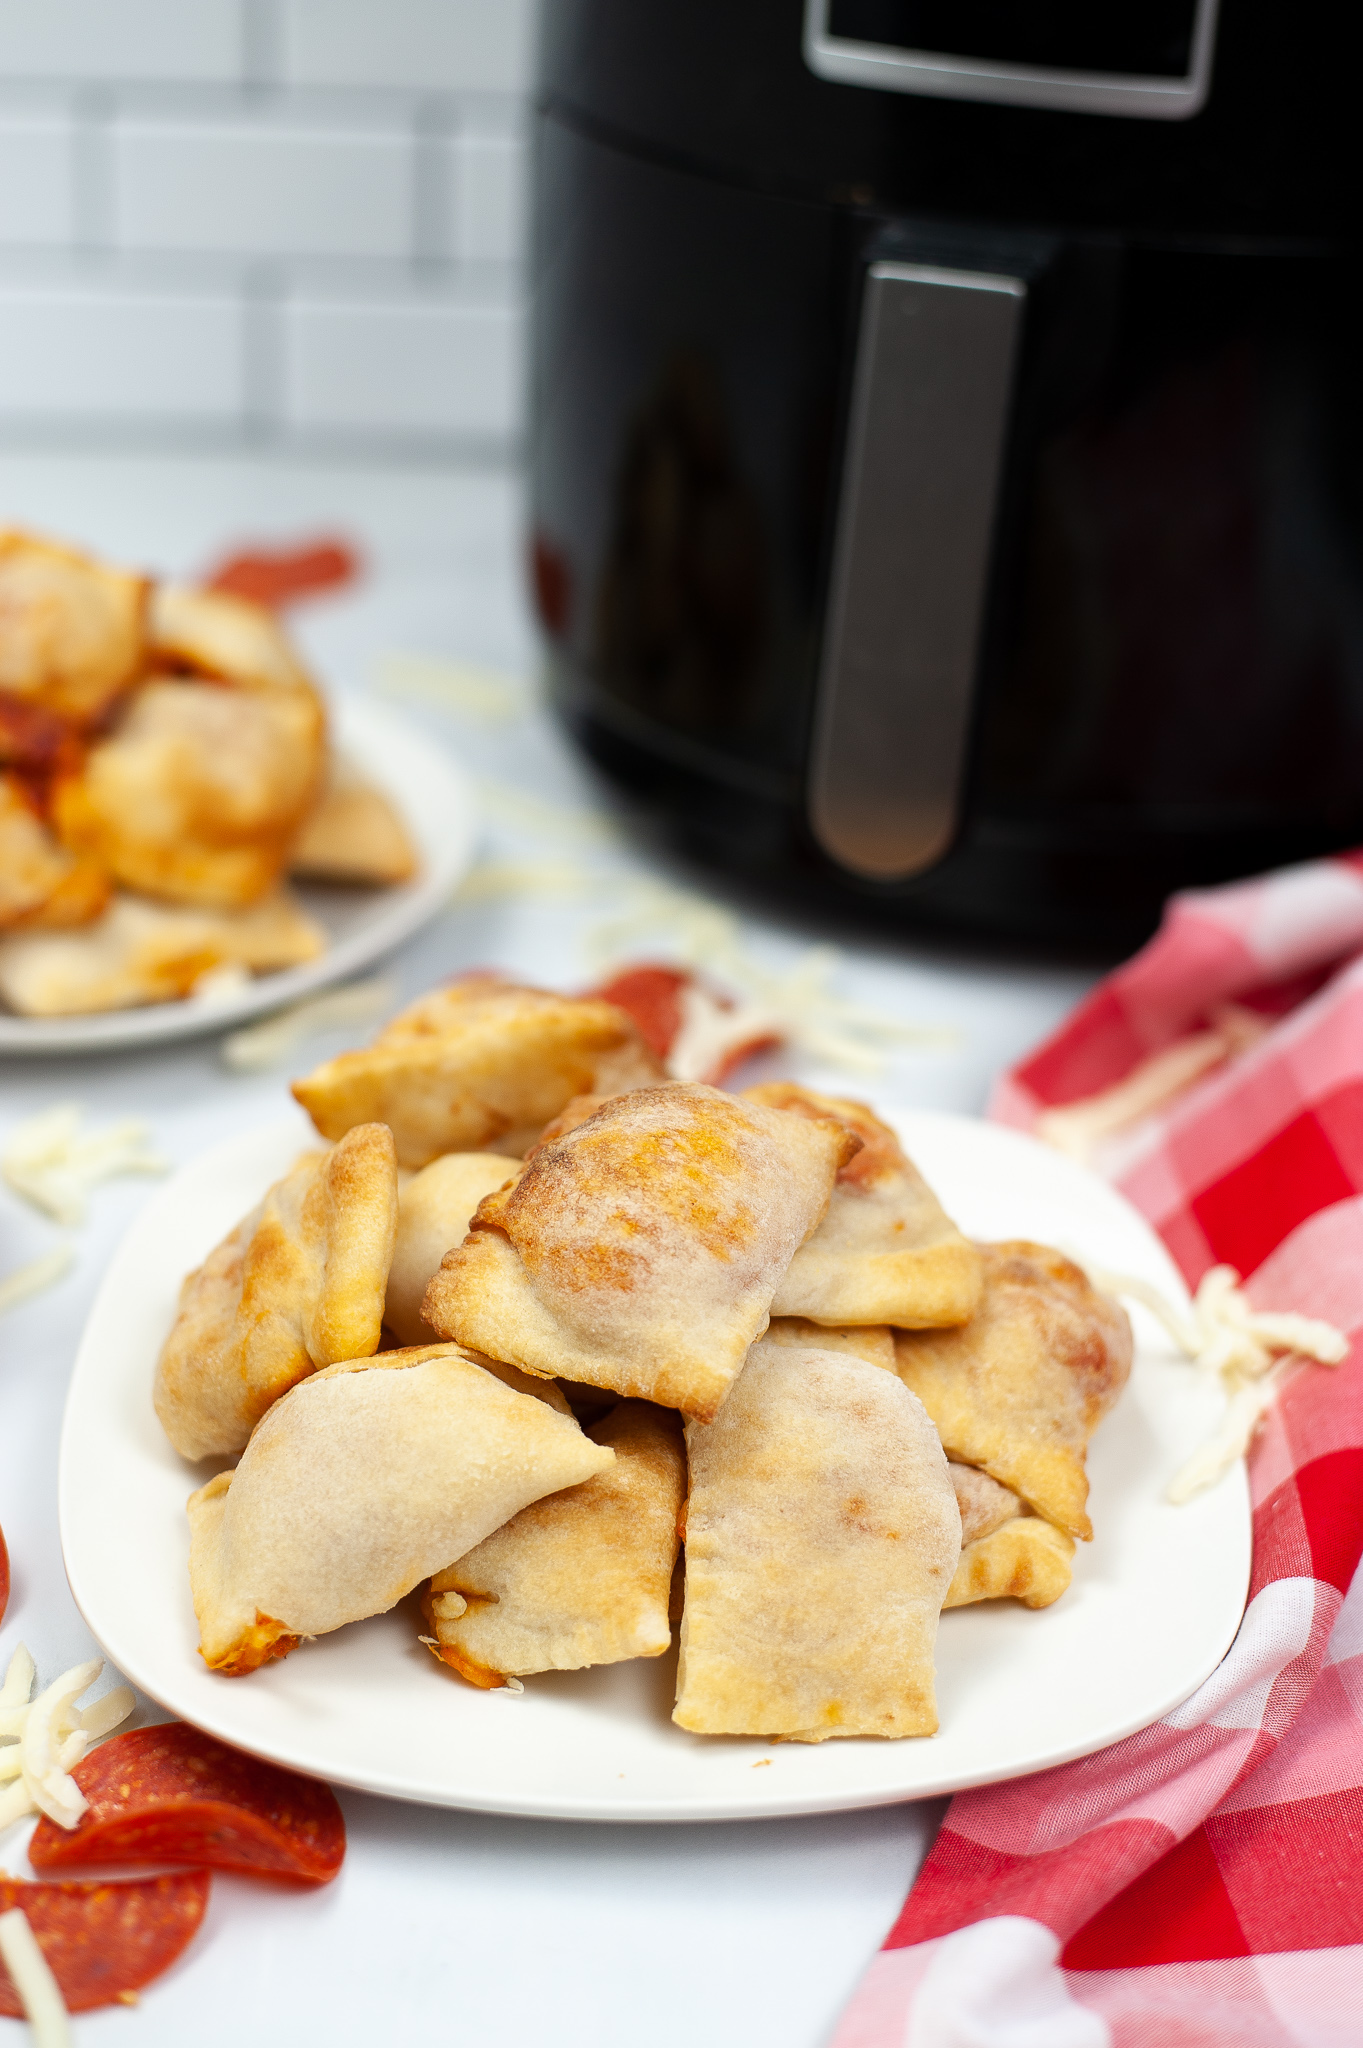 Stack of pizza rolls on a white plate.